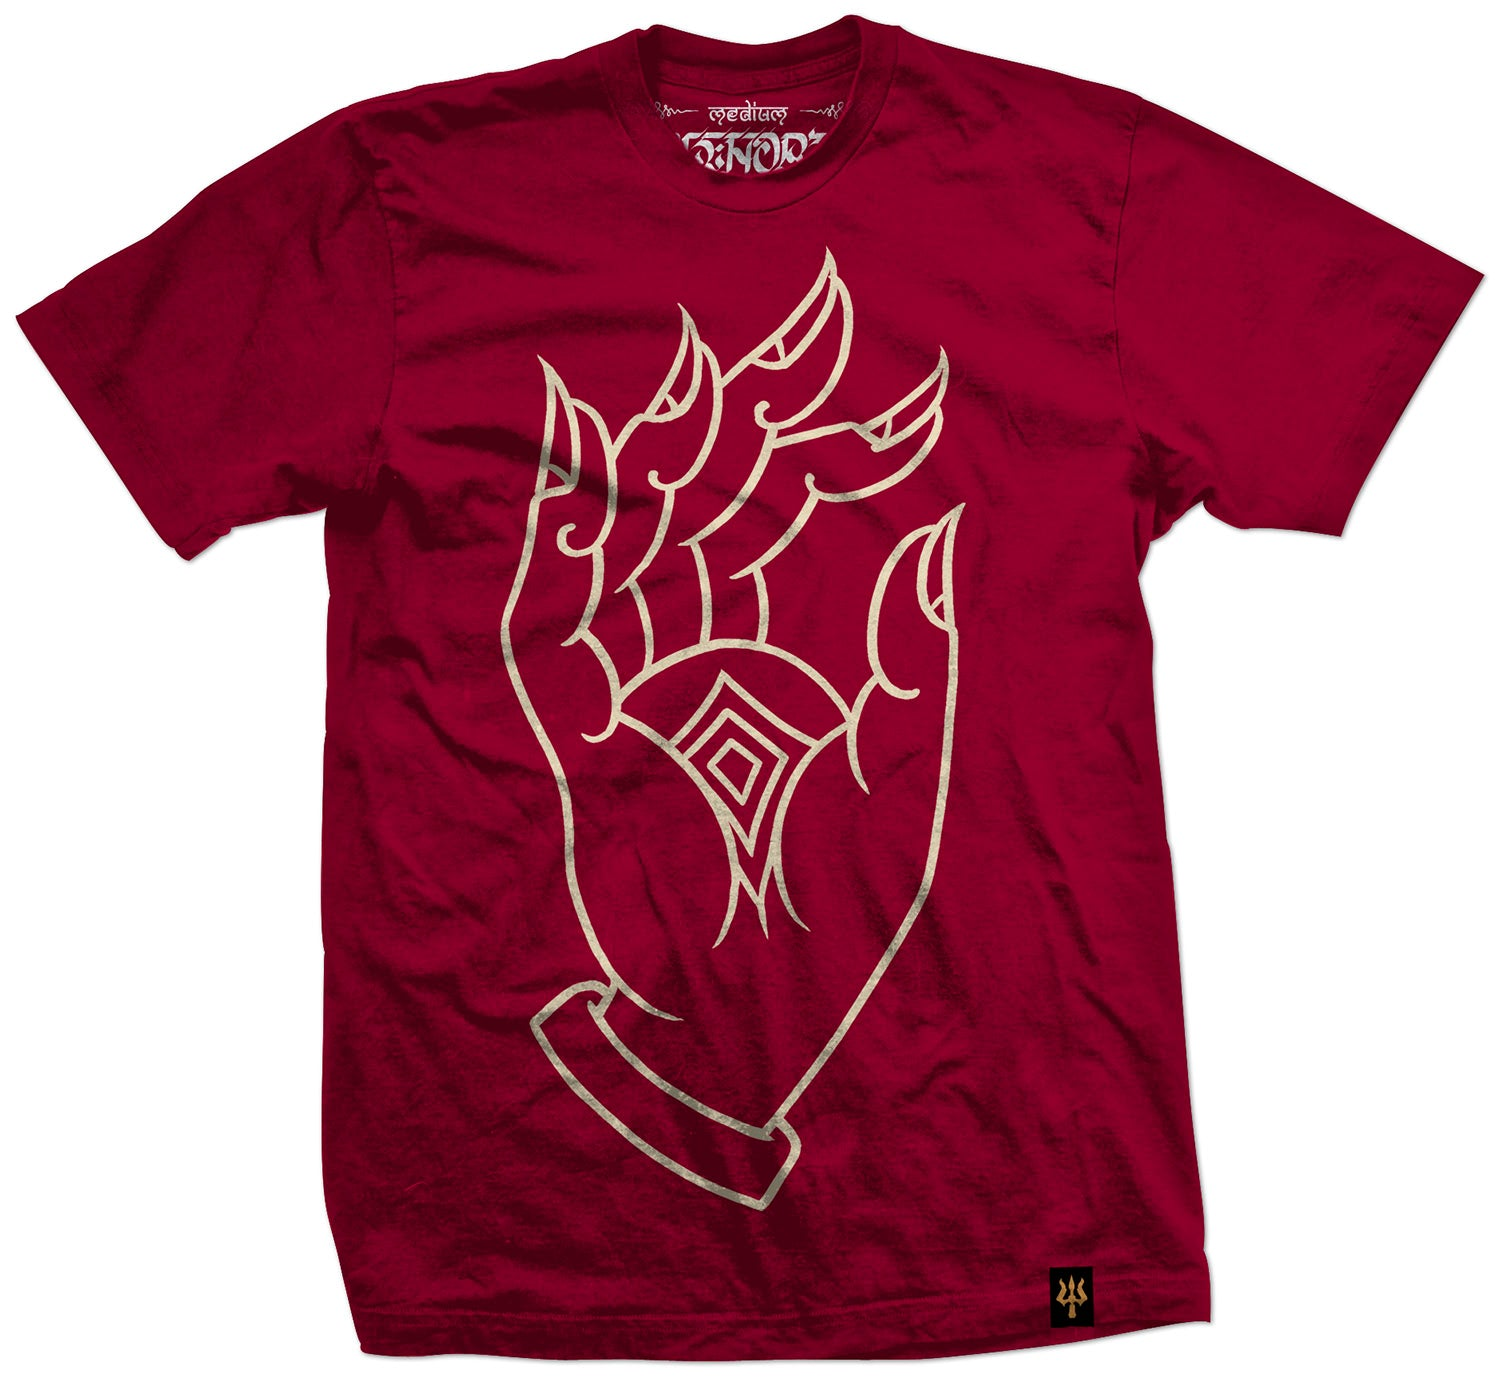 'Liberation Through Realization': Maroon T-shirt (Pre-Order)